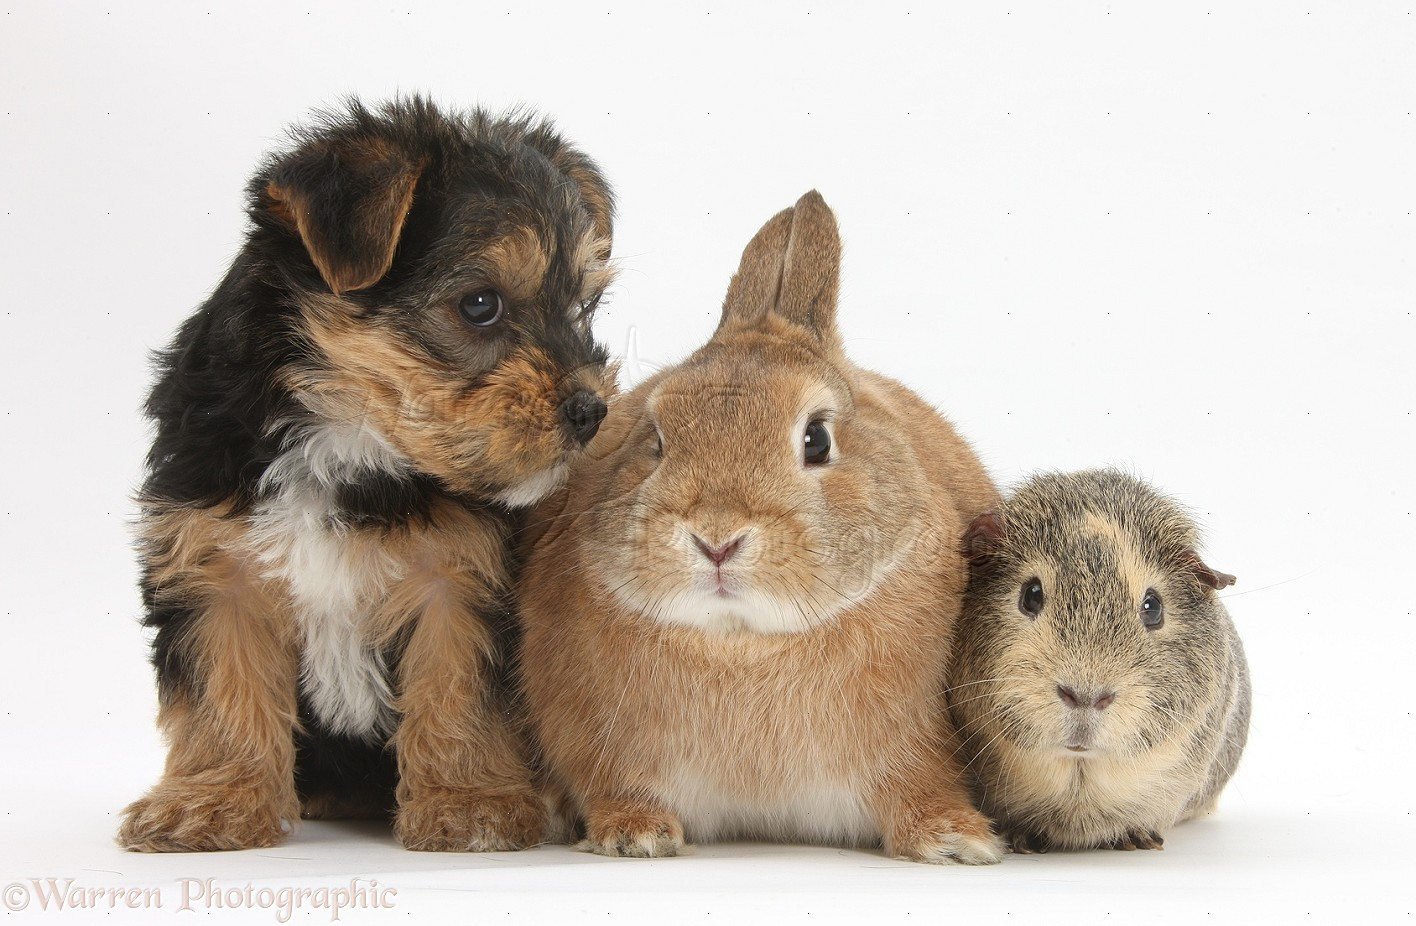 pets yorkie cross pup with rabbit and guinea pig photo rabbits dvd 1972 rabbits unterricht flag football